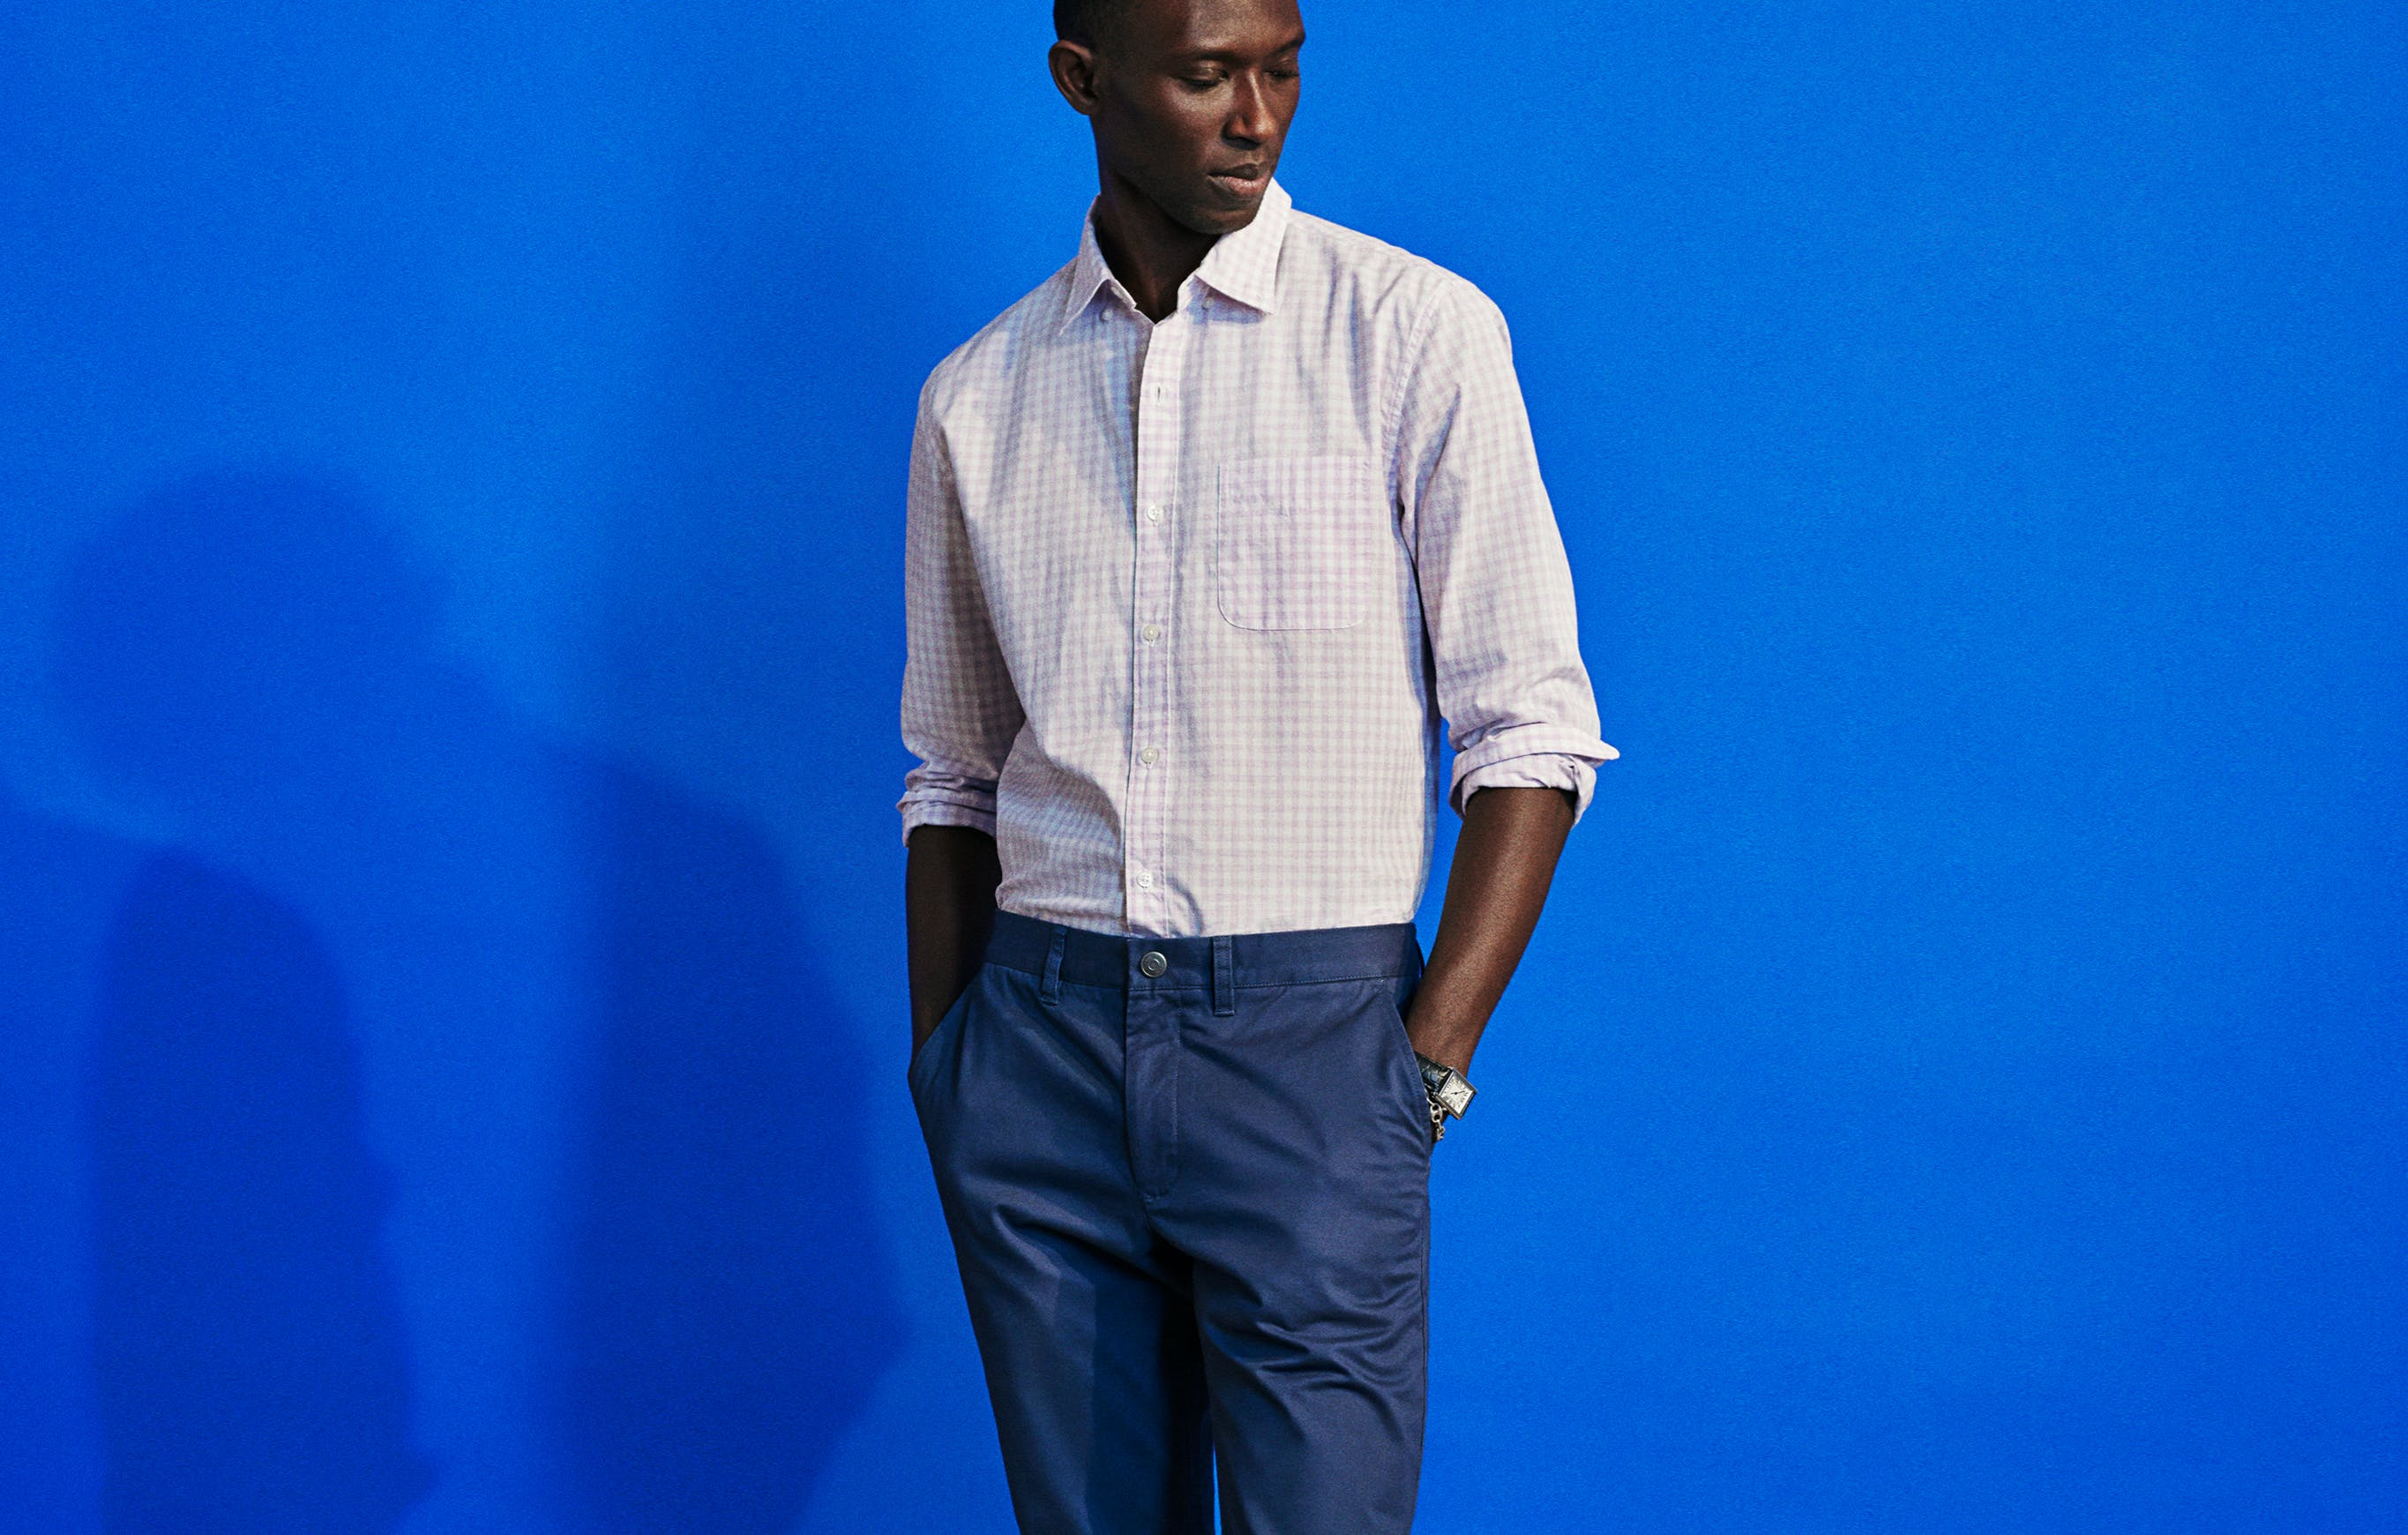 Dark blue works all year, but now is really its time to shine. Team these up with a lighter, subtly colored shirt and clean derbys for a look appropriate in almost any context.